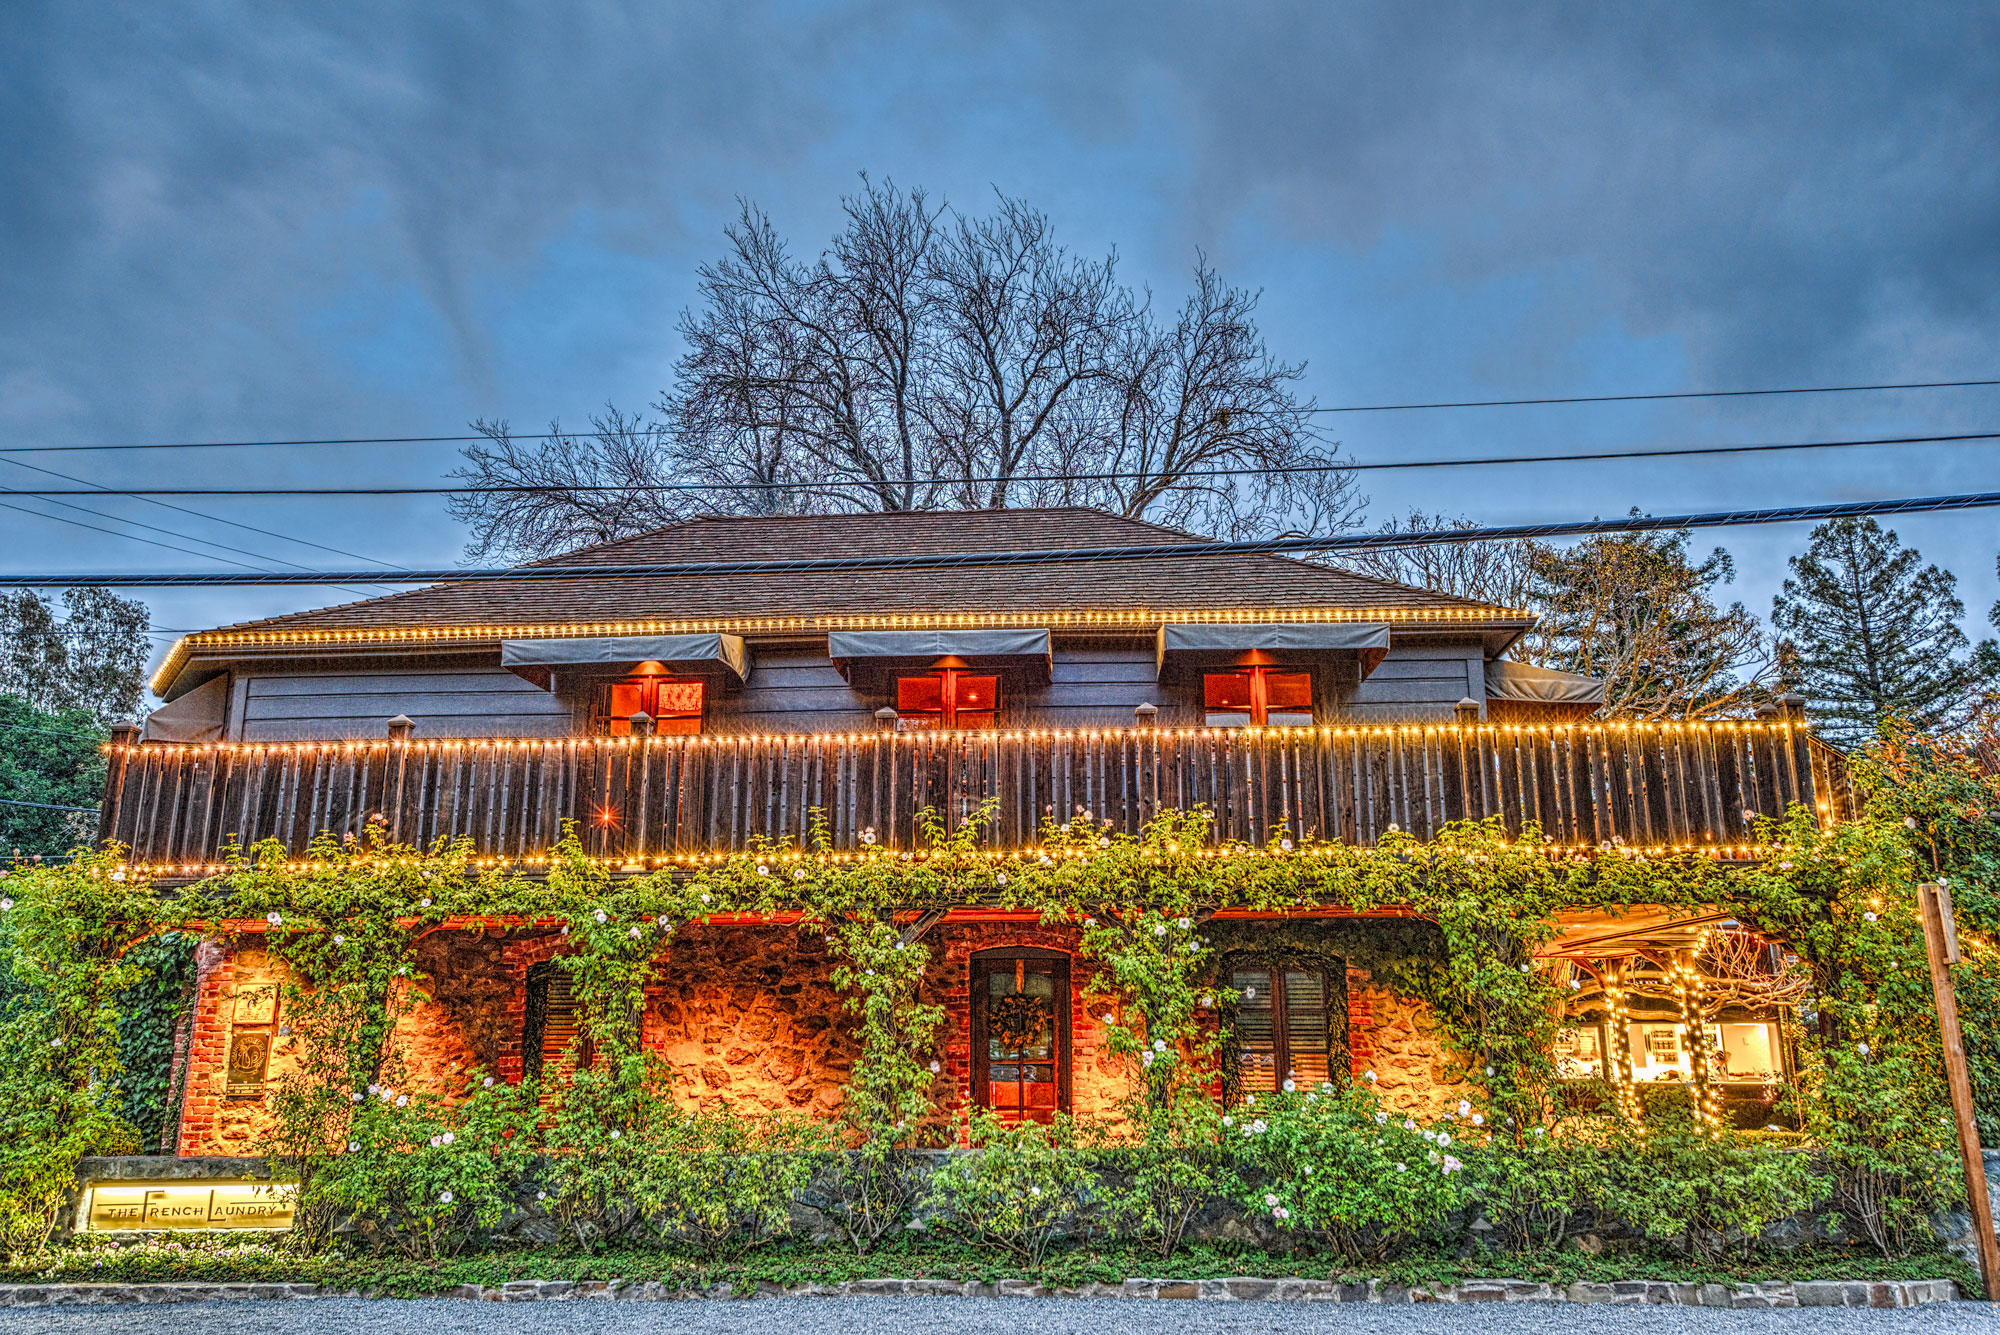 The French Laundry at sunset